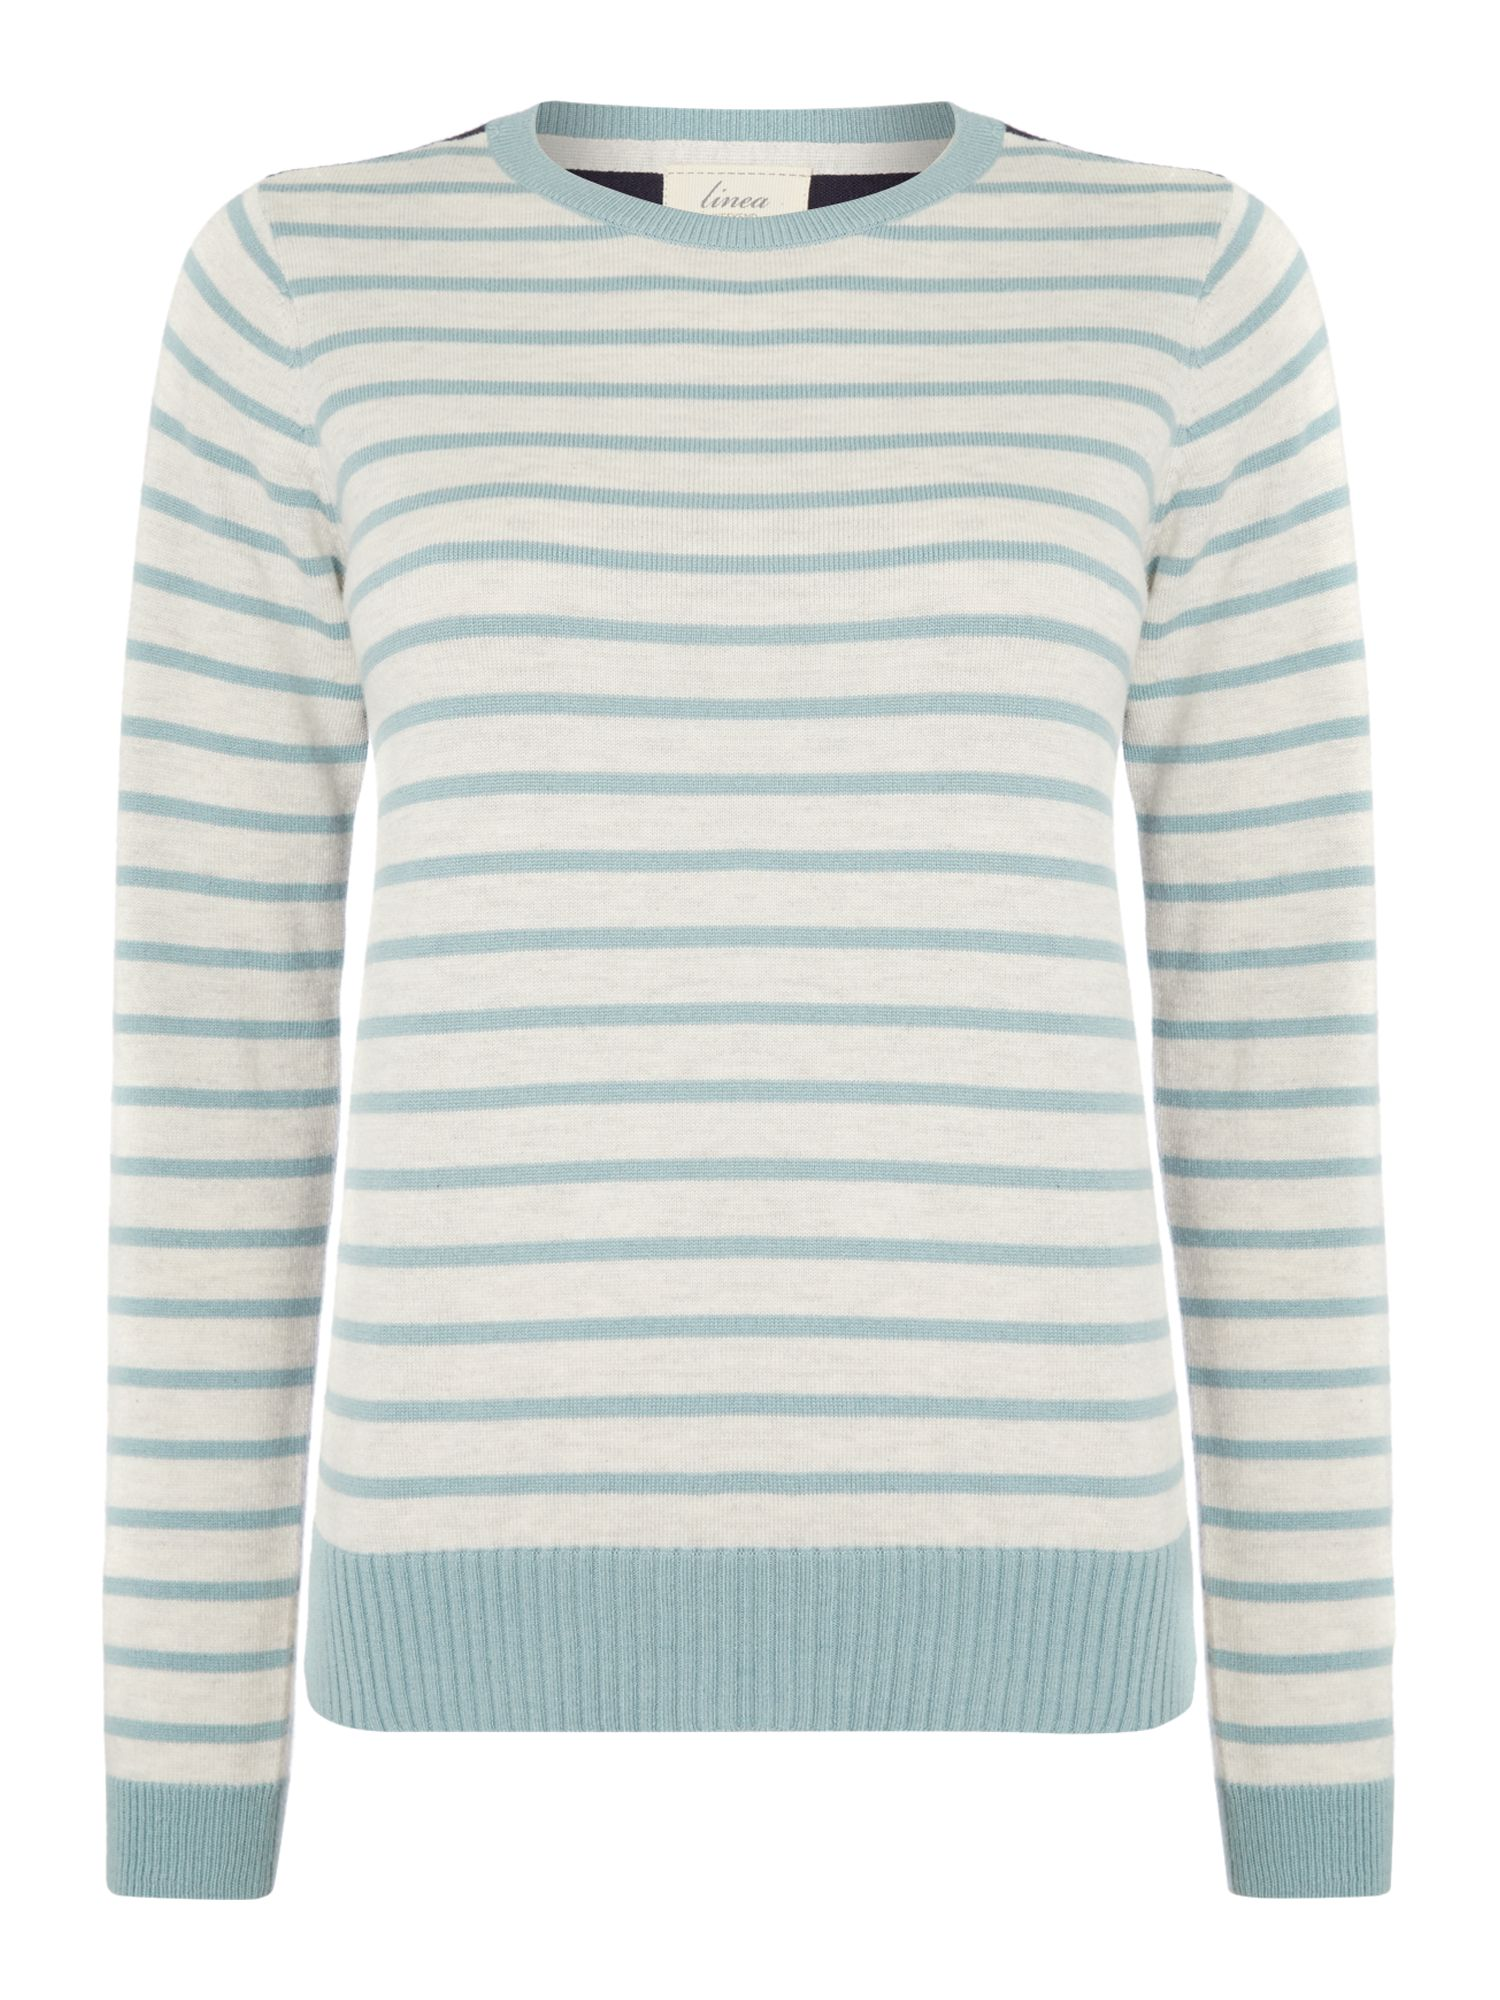 3 colour stripe jumper